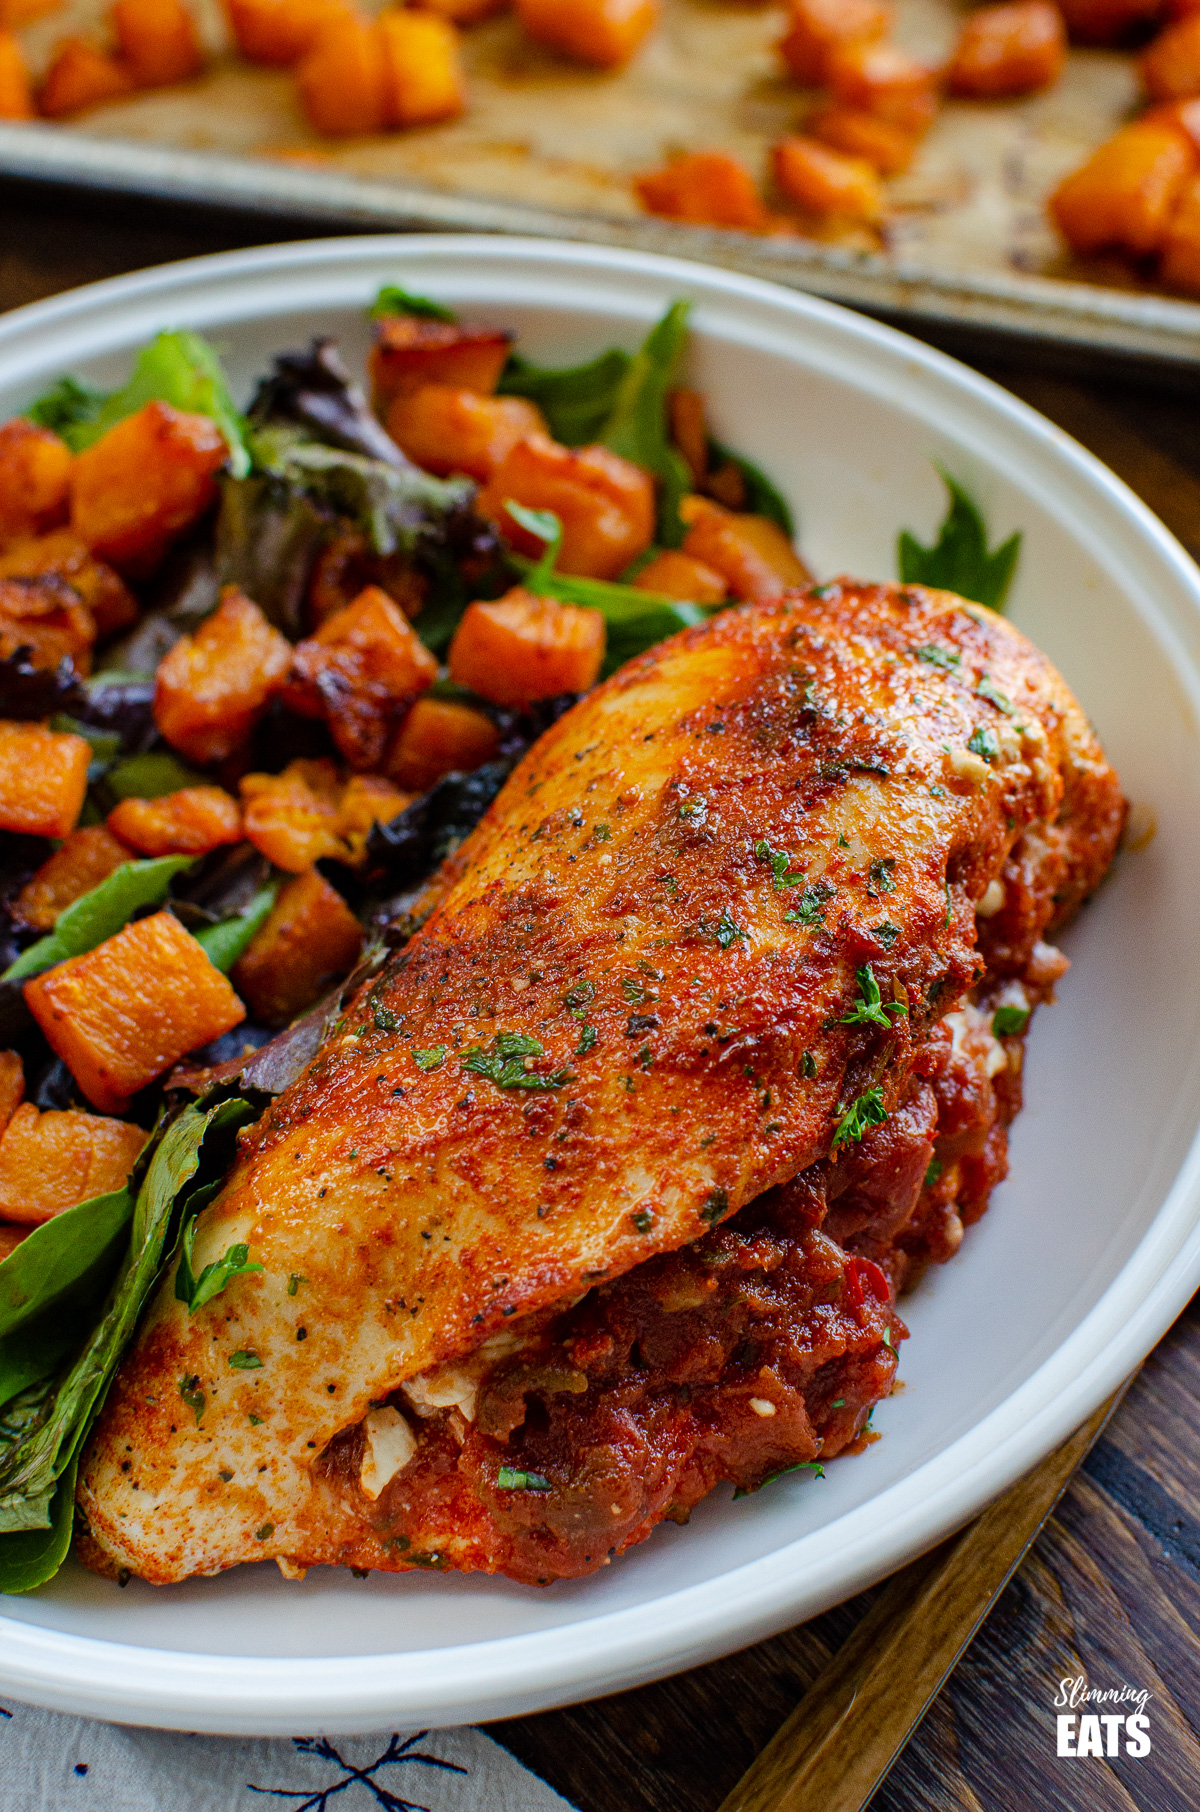 Spicy Chicken Stuffed with Feta Cheese and Salsa in bowl with roasted squash and salad